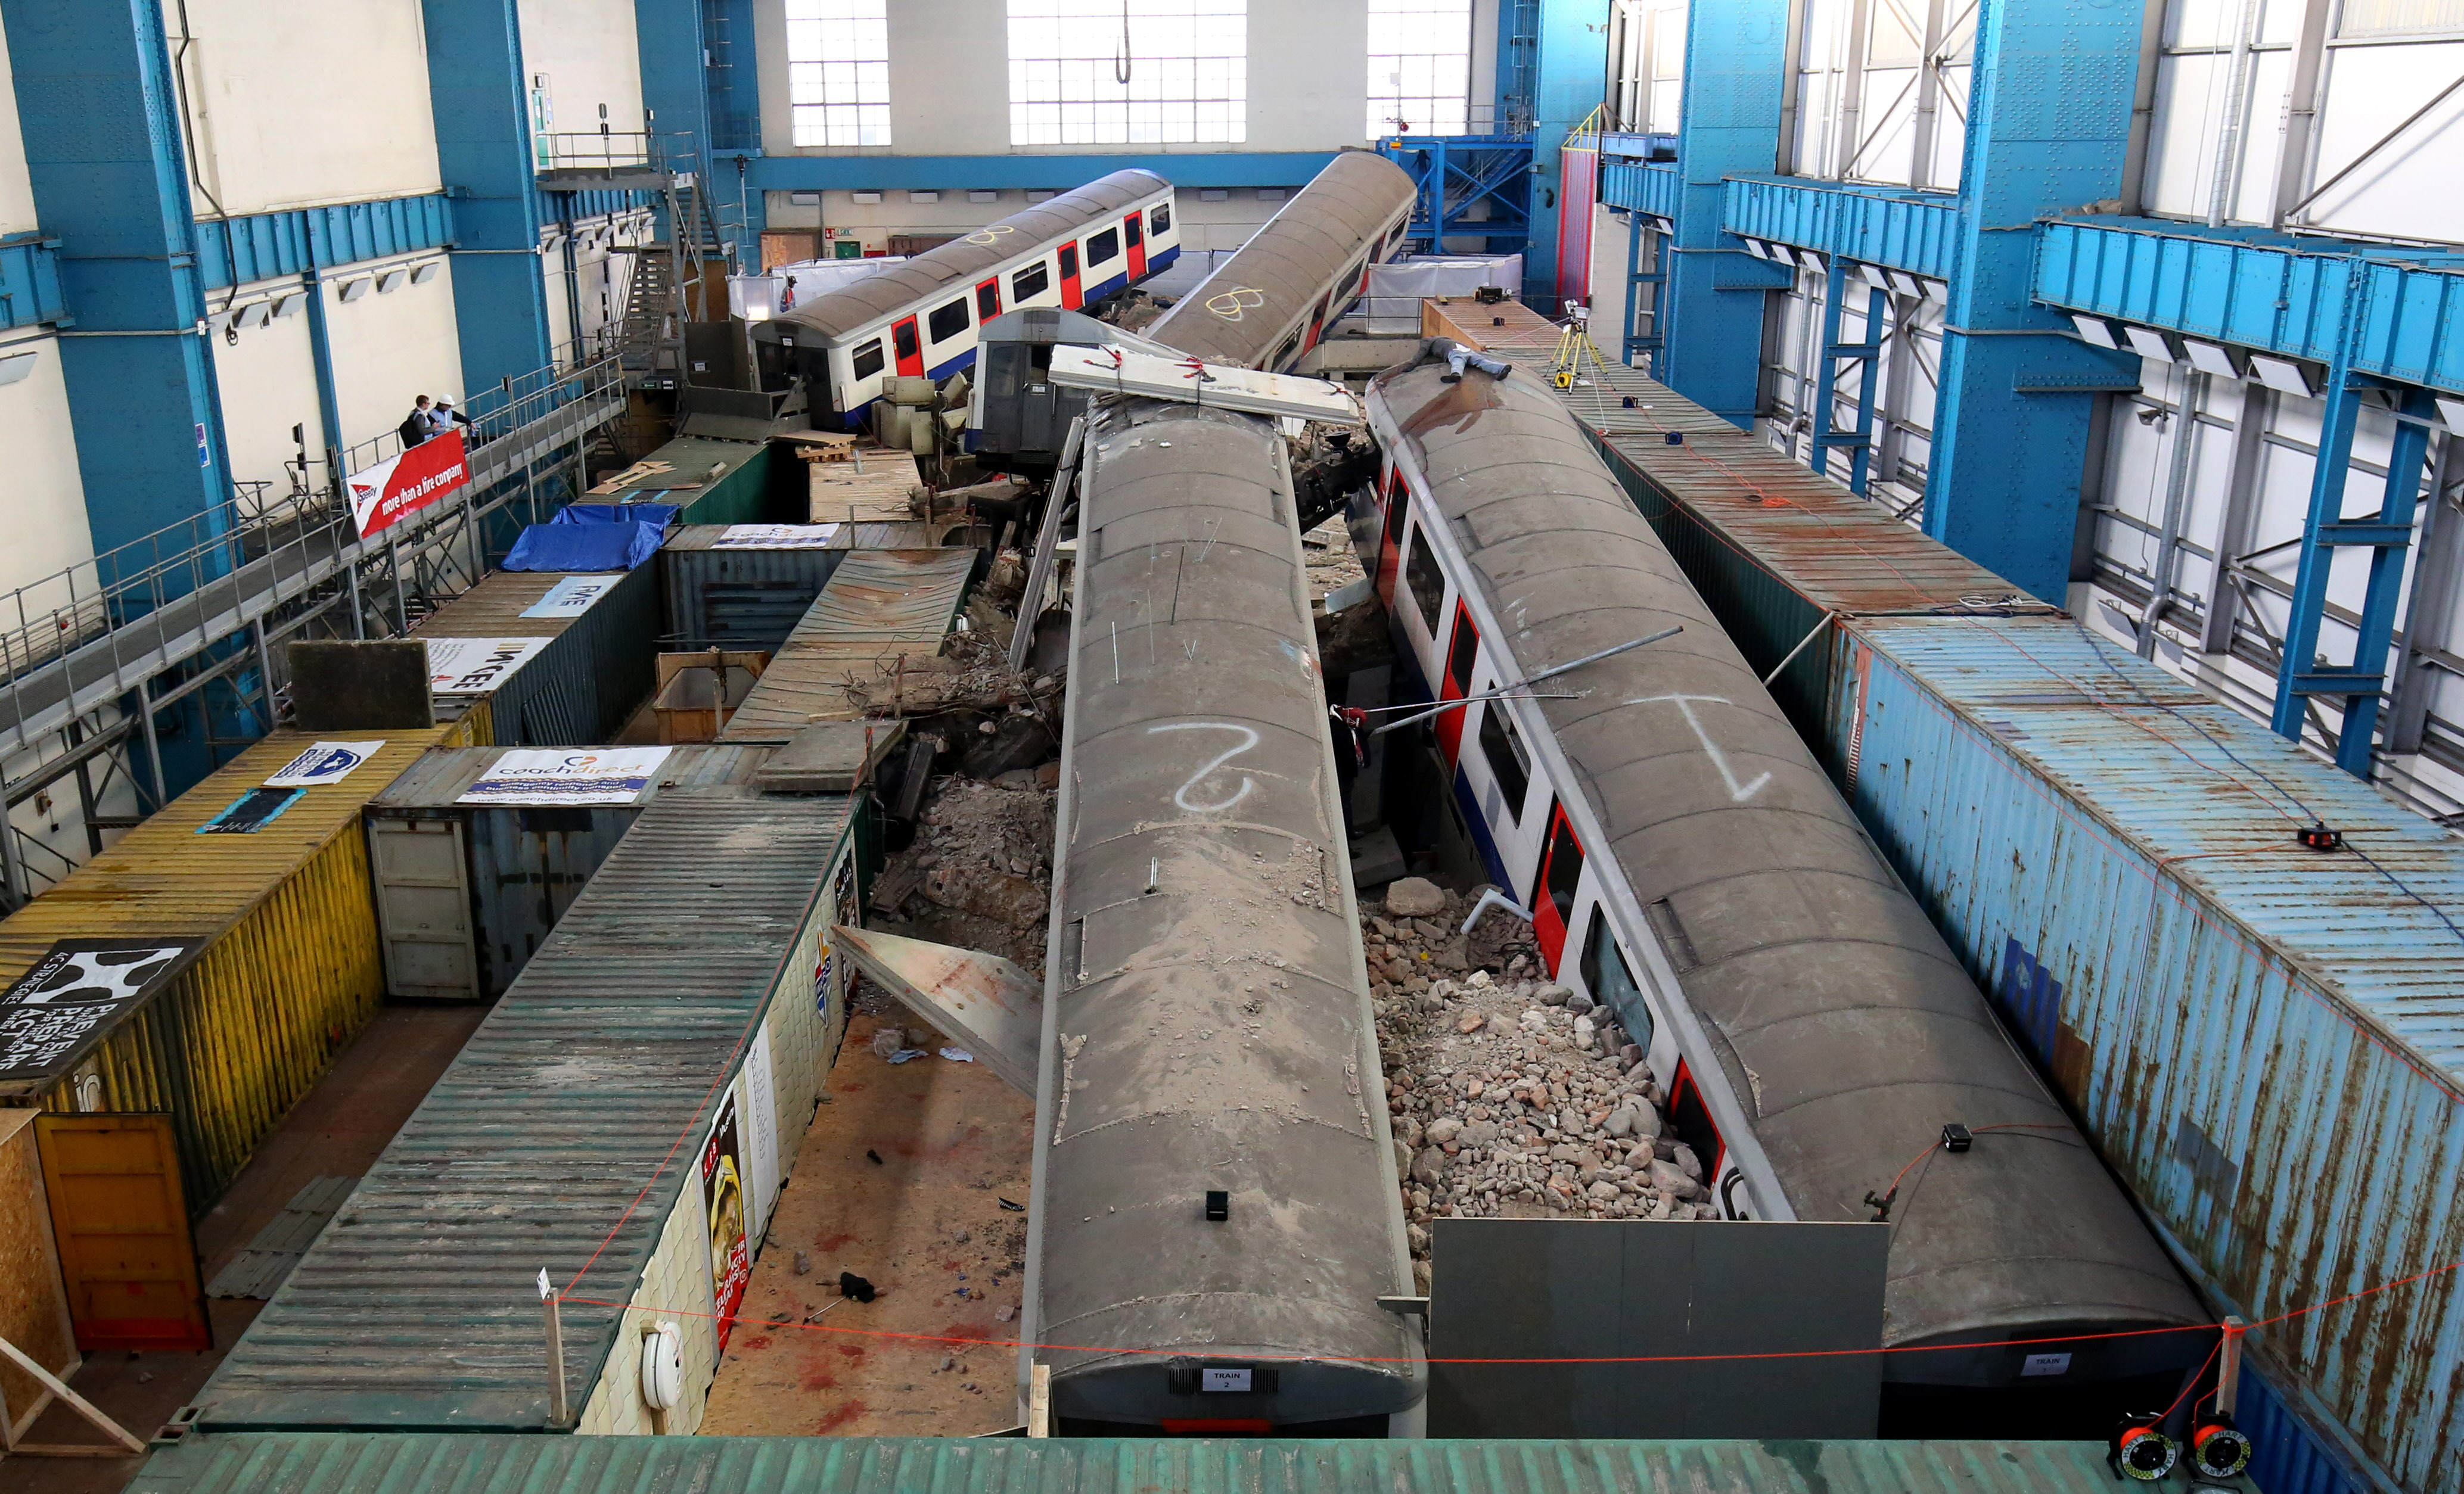 Europes Biggest Ever Disaster Simulation Is Truly Terrifying train